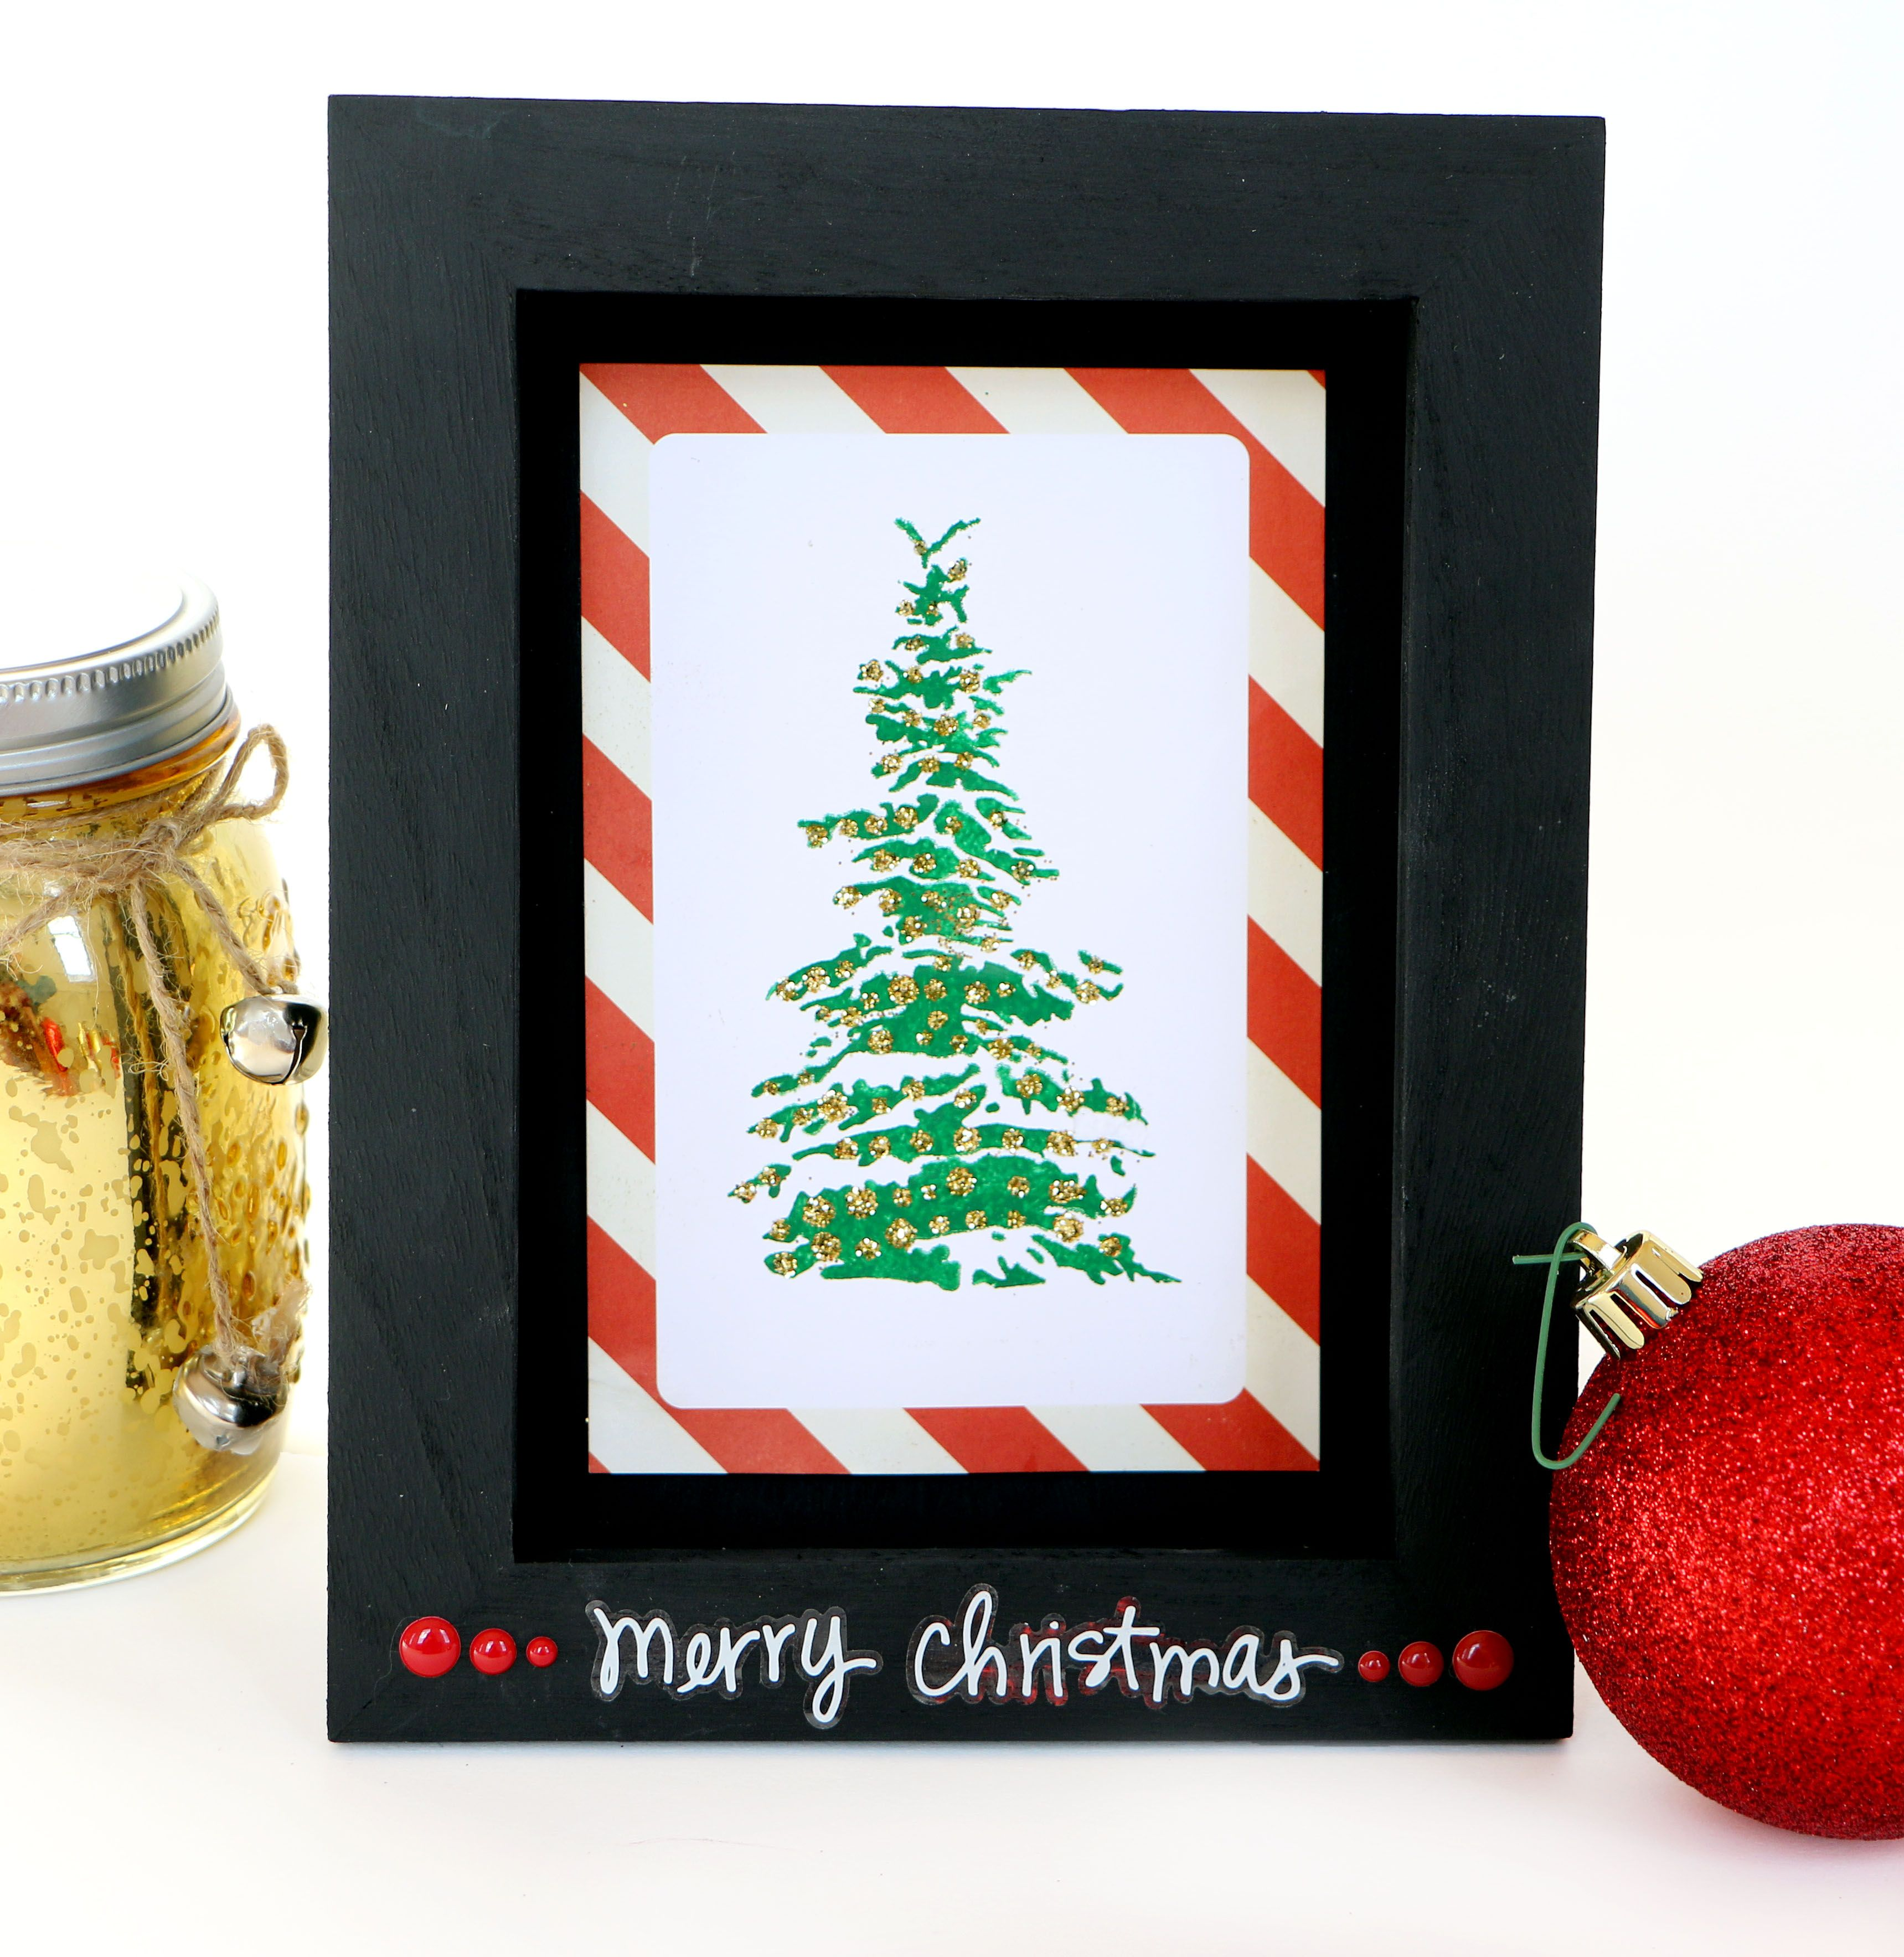 Grab A Frame And The Christmas Tree Stencil From Stencil1